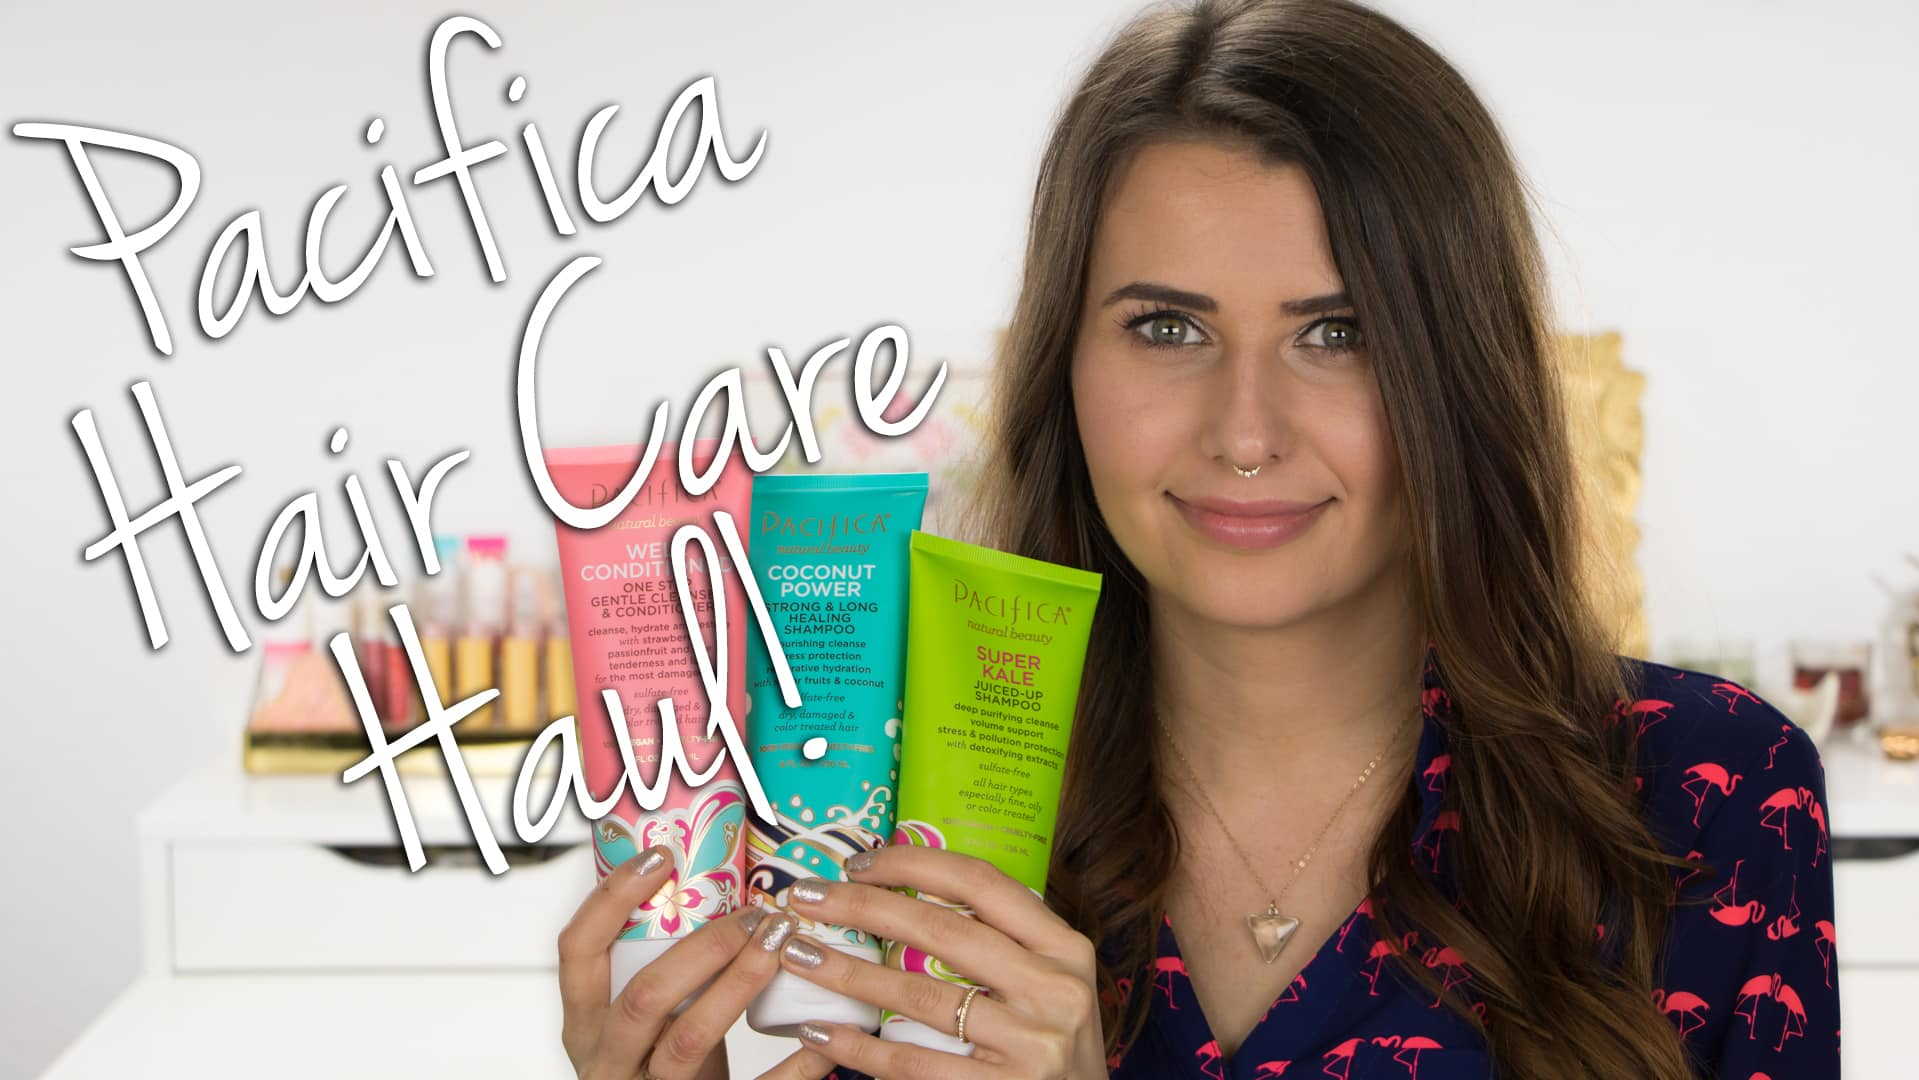 Pacifica Hair Care Haul